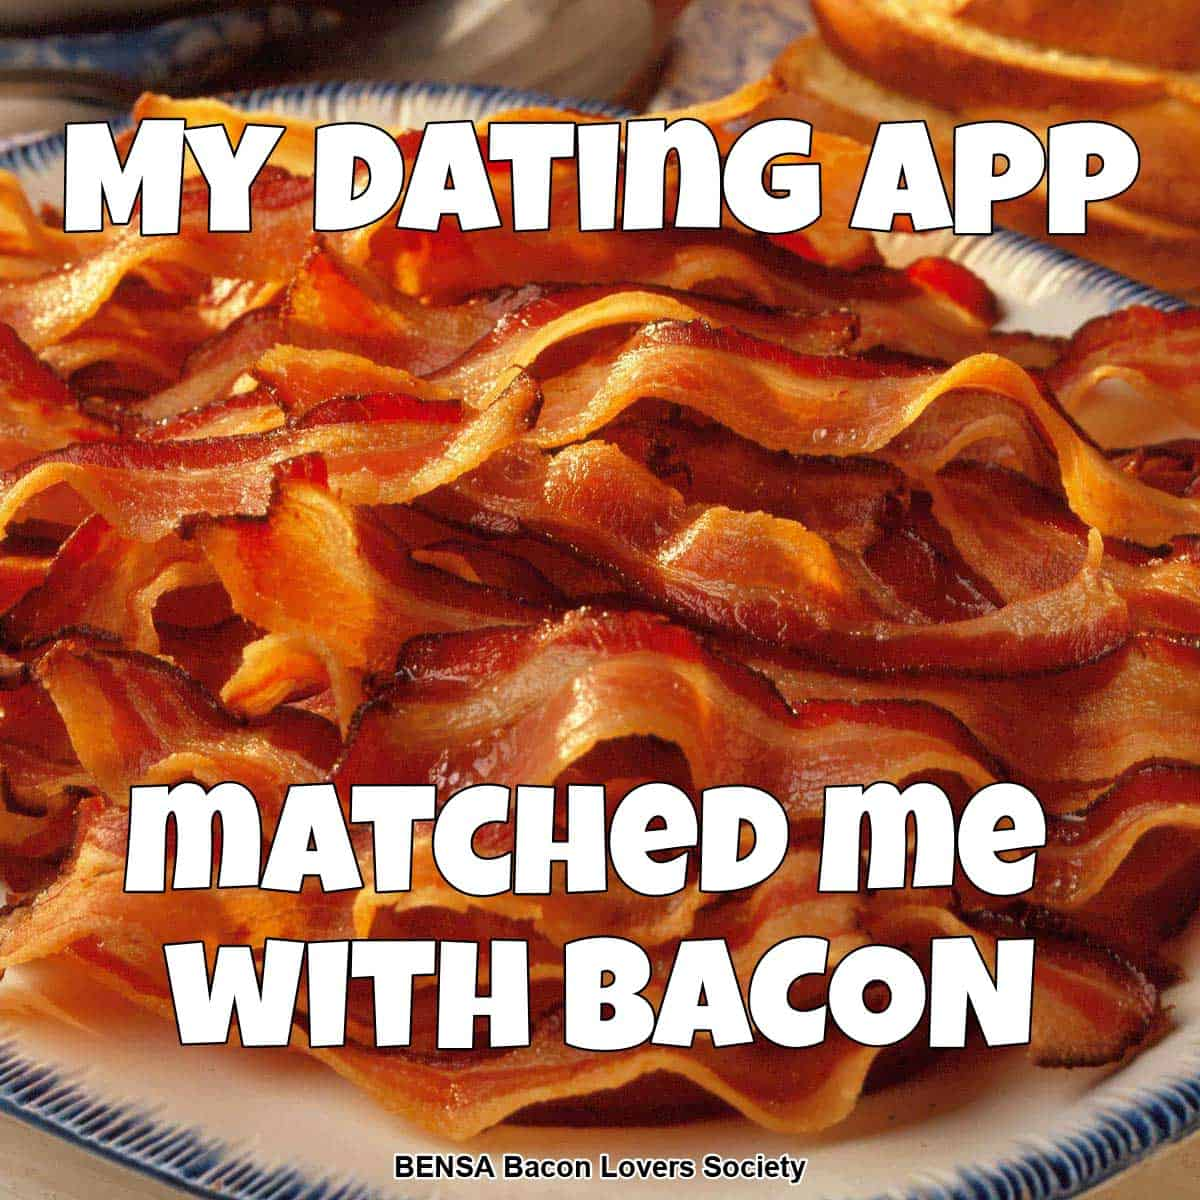 A plate of bacon and text: My Dating App Matched Me With Bacon